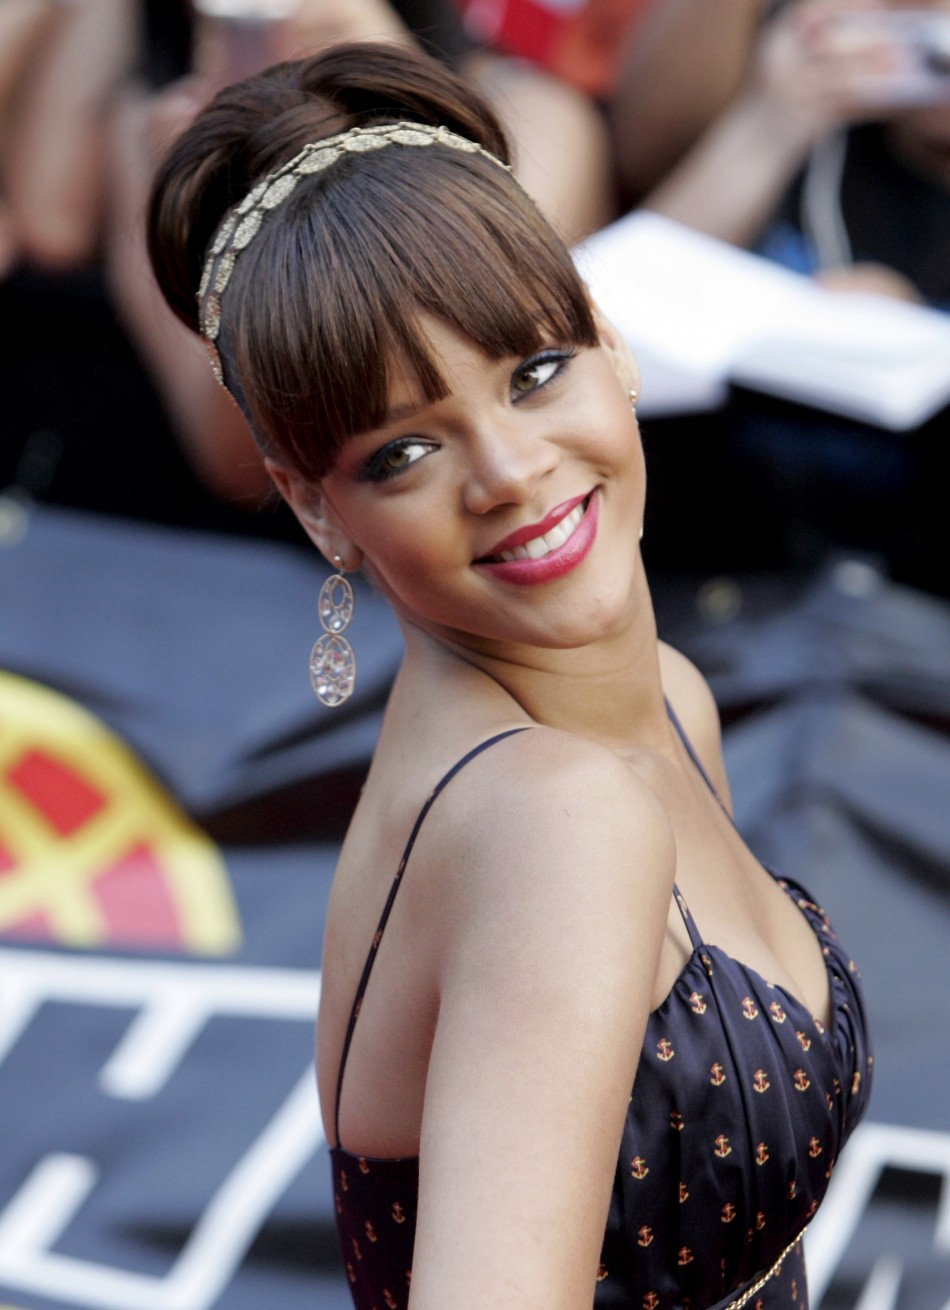 rihanna latest hd wallpapers hd wallpapers high definition free background. Black Bedroom Furniture Sets. Home Design Ideas